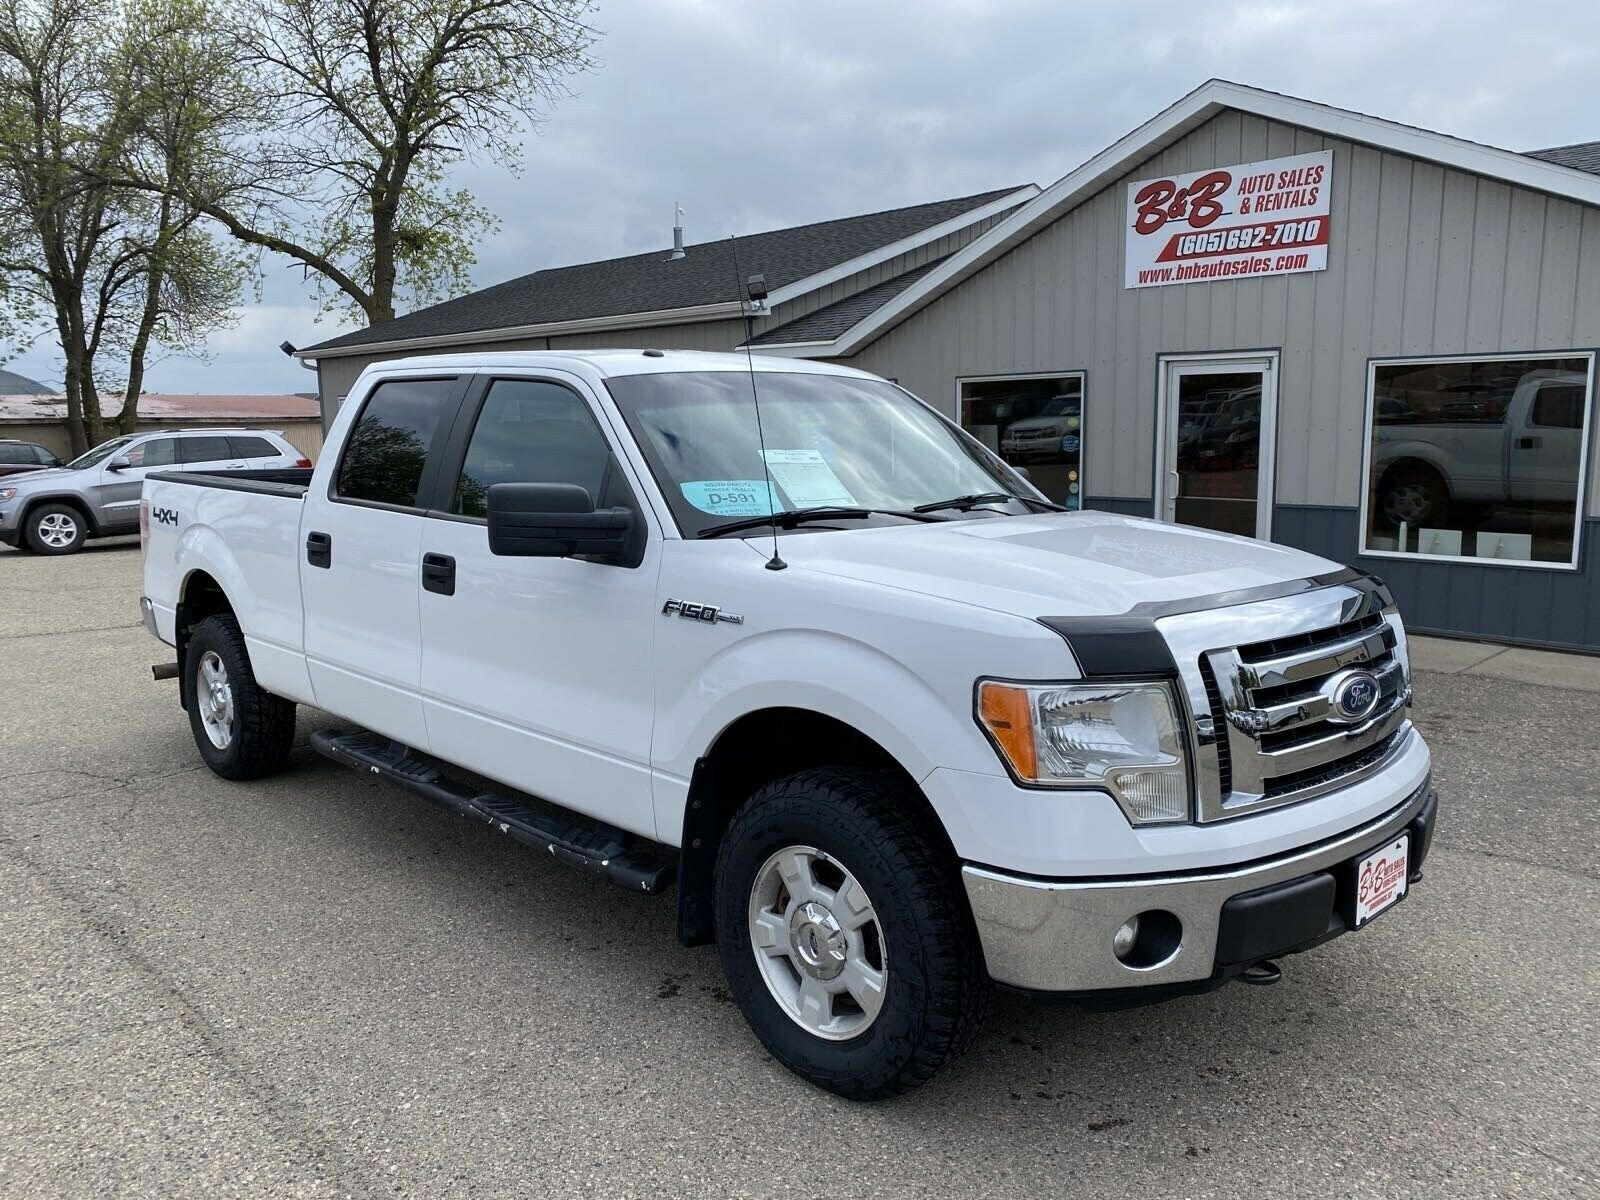 2011 Ford F-150 Crew Cab XLT 4x4 111427 Miles Oxford White Pickup V-8 cyl Automa